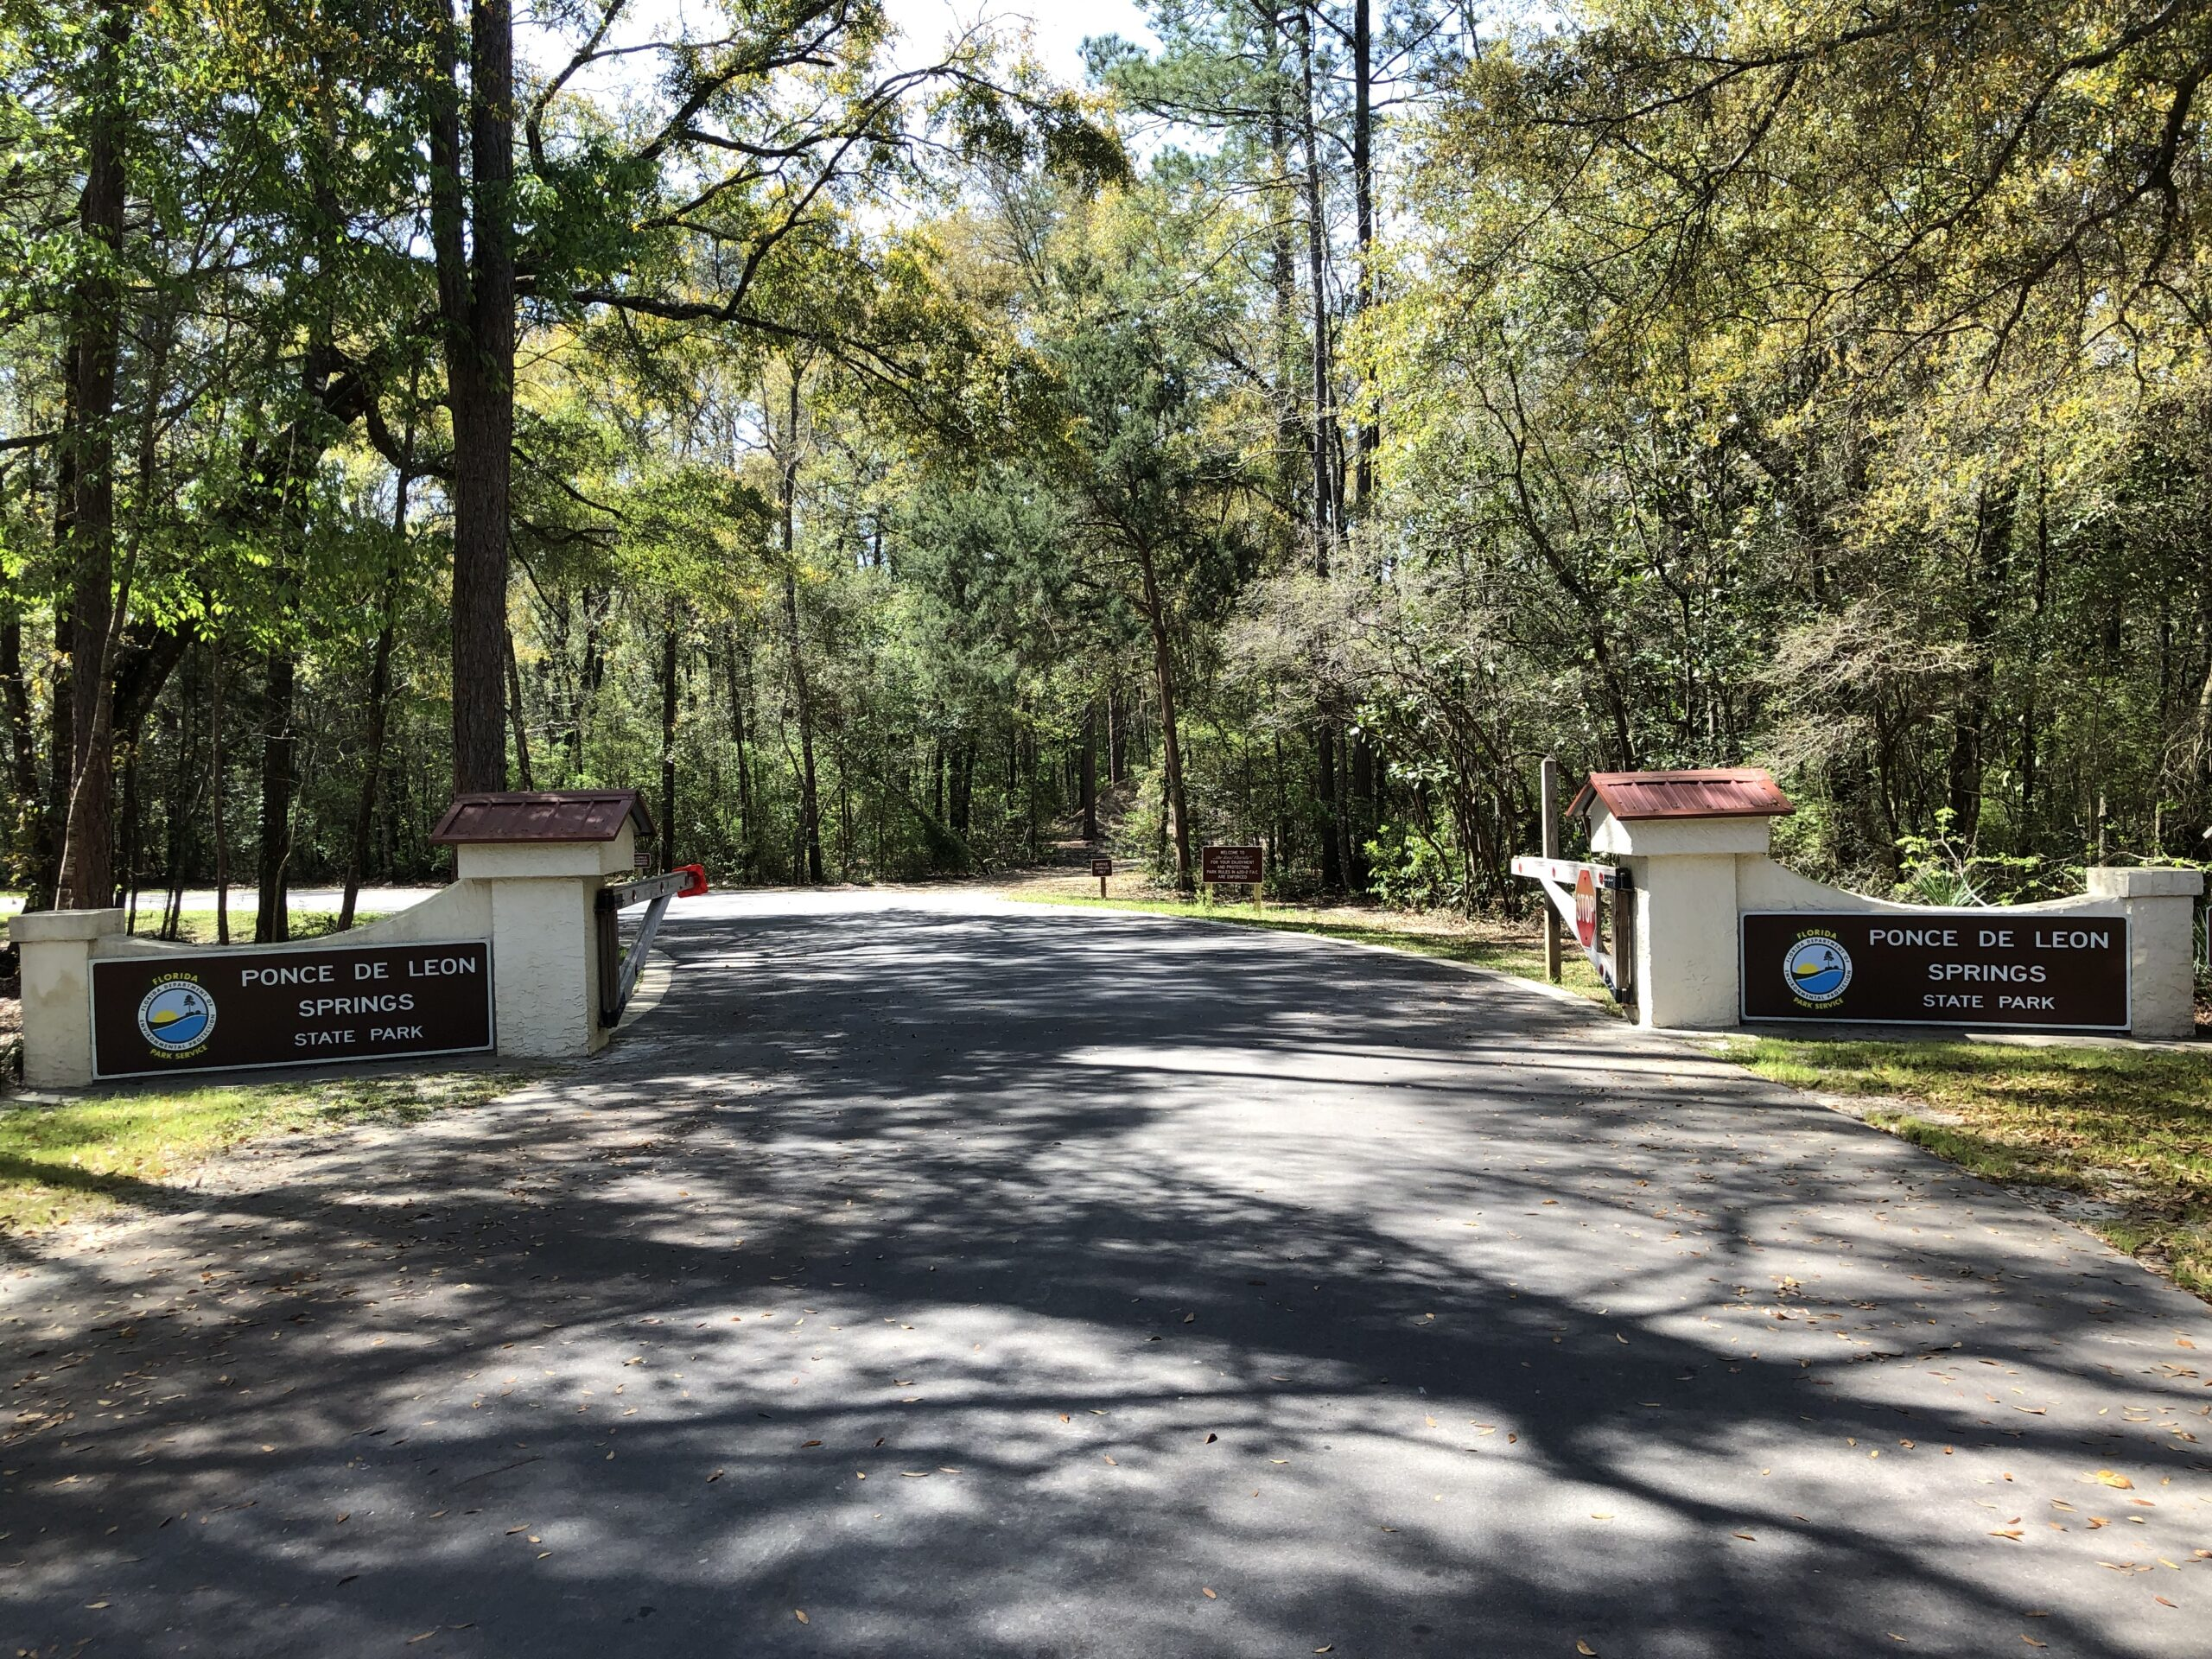 Ponce de Leon State Park Entry Sign